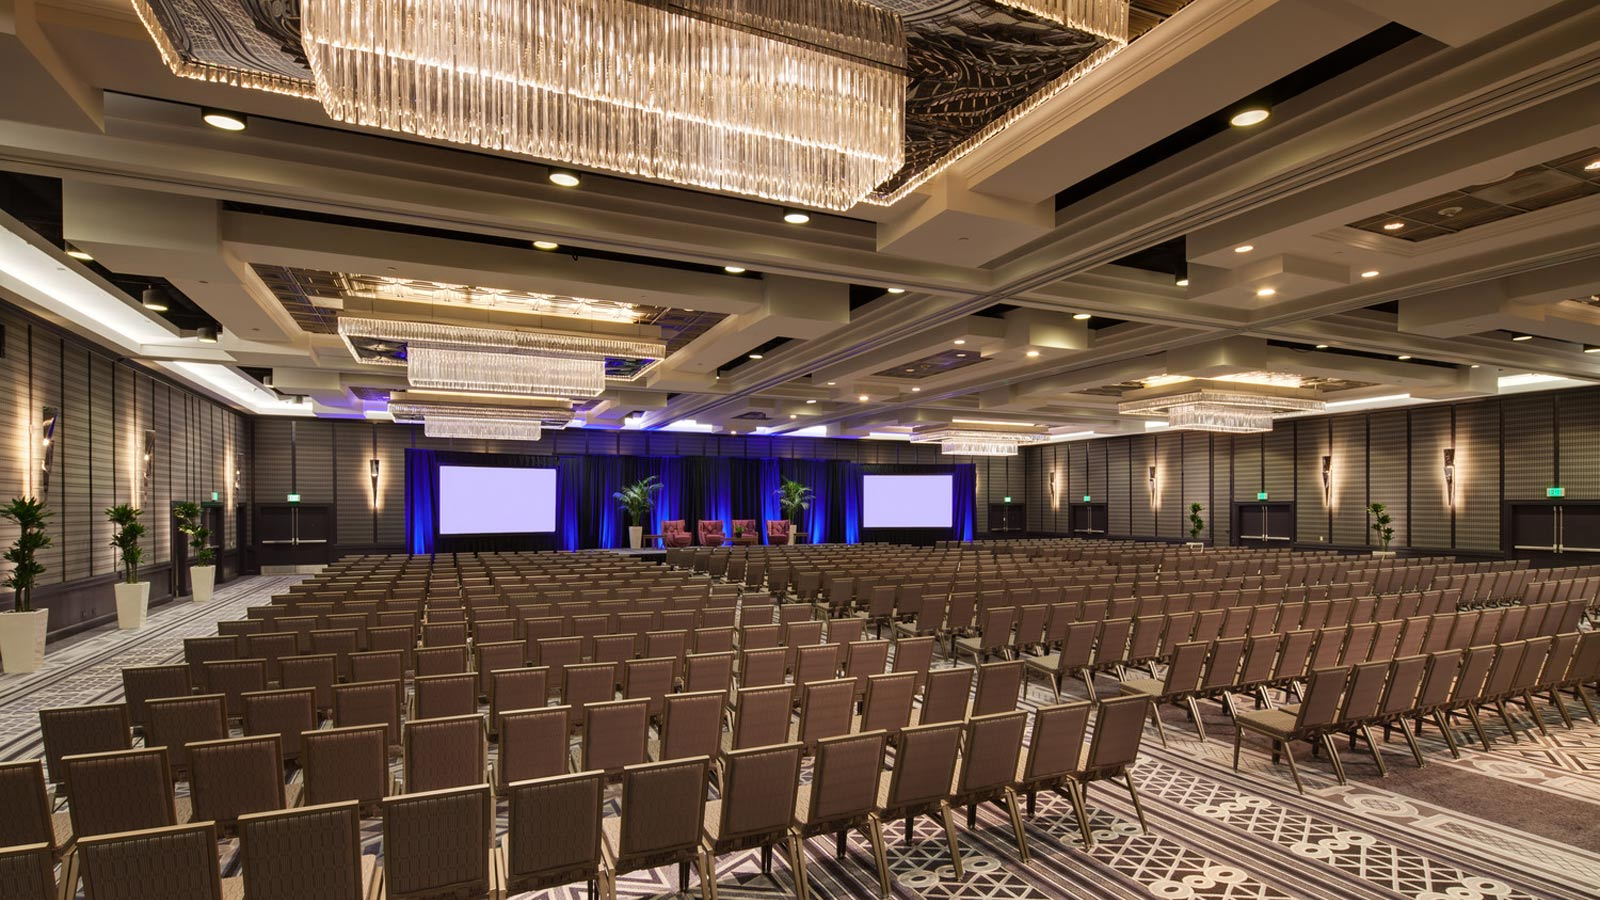 Los Angeles Meetings & Events - California Ballroom